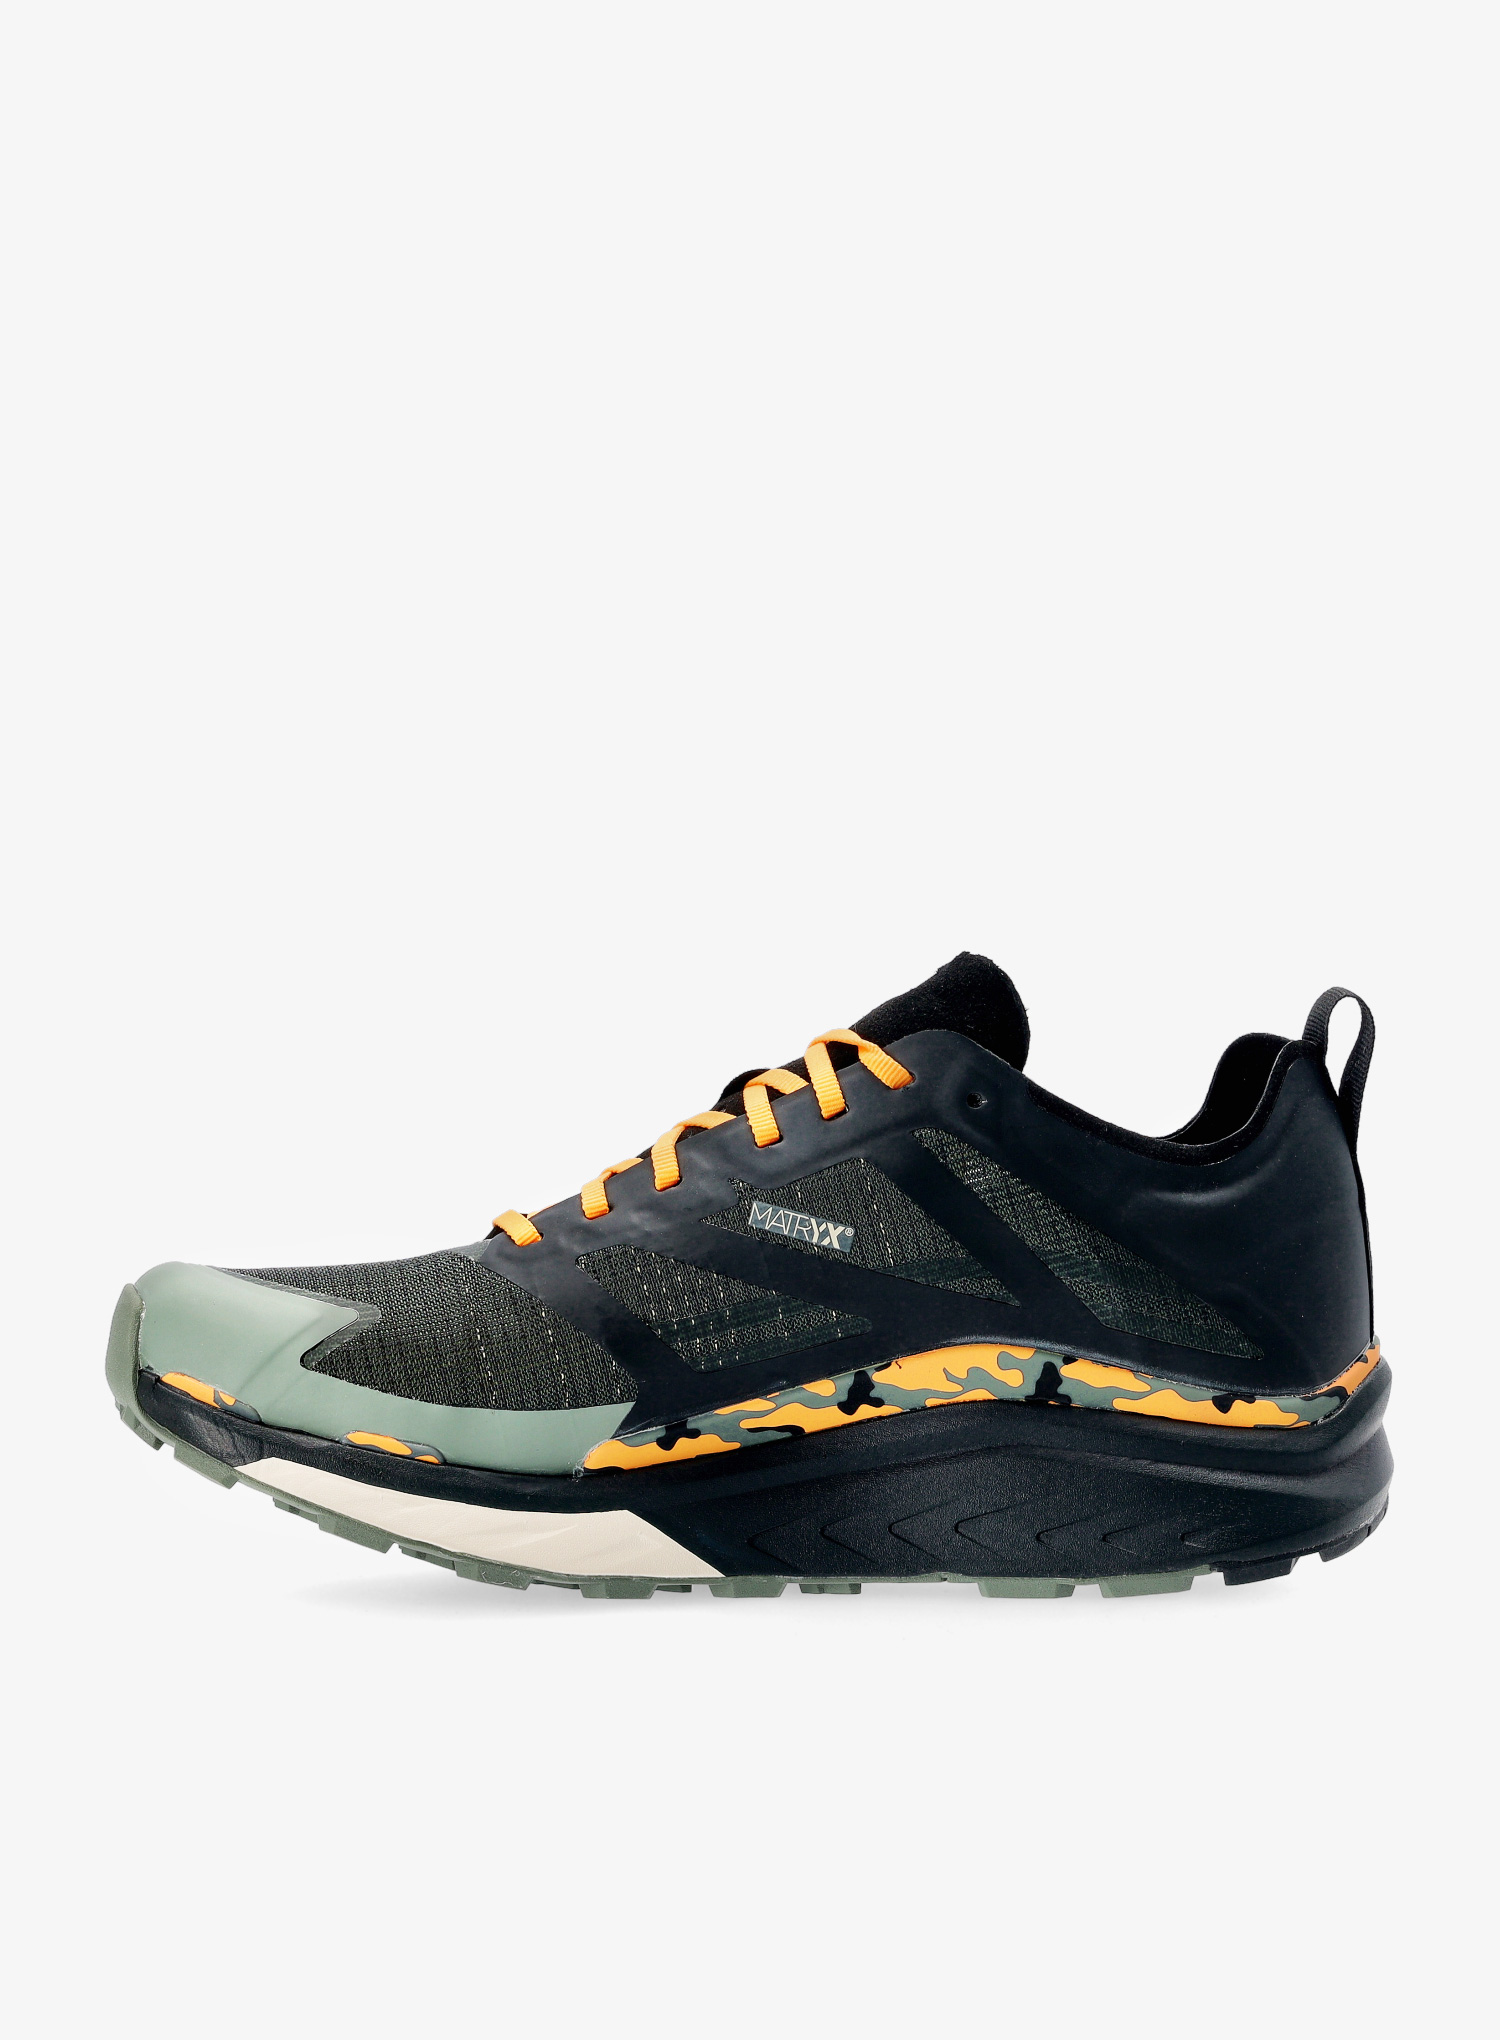 Buty trailowe The North Face Vectiv Infinite LTD - agave green/gold - zdjęcie nr. 7